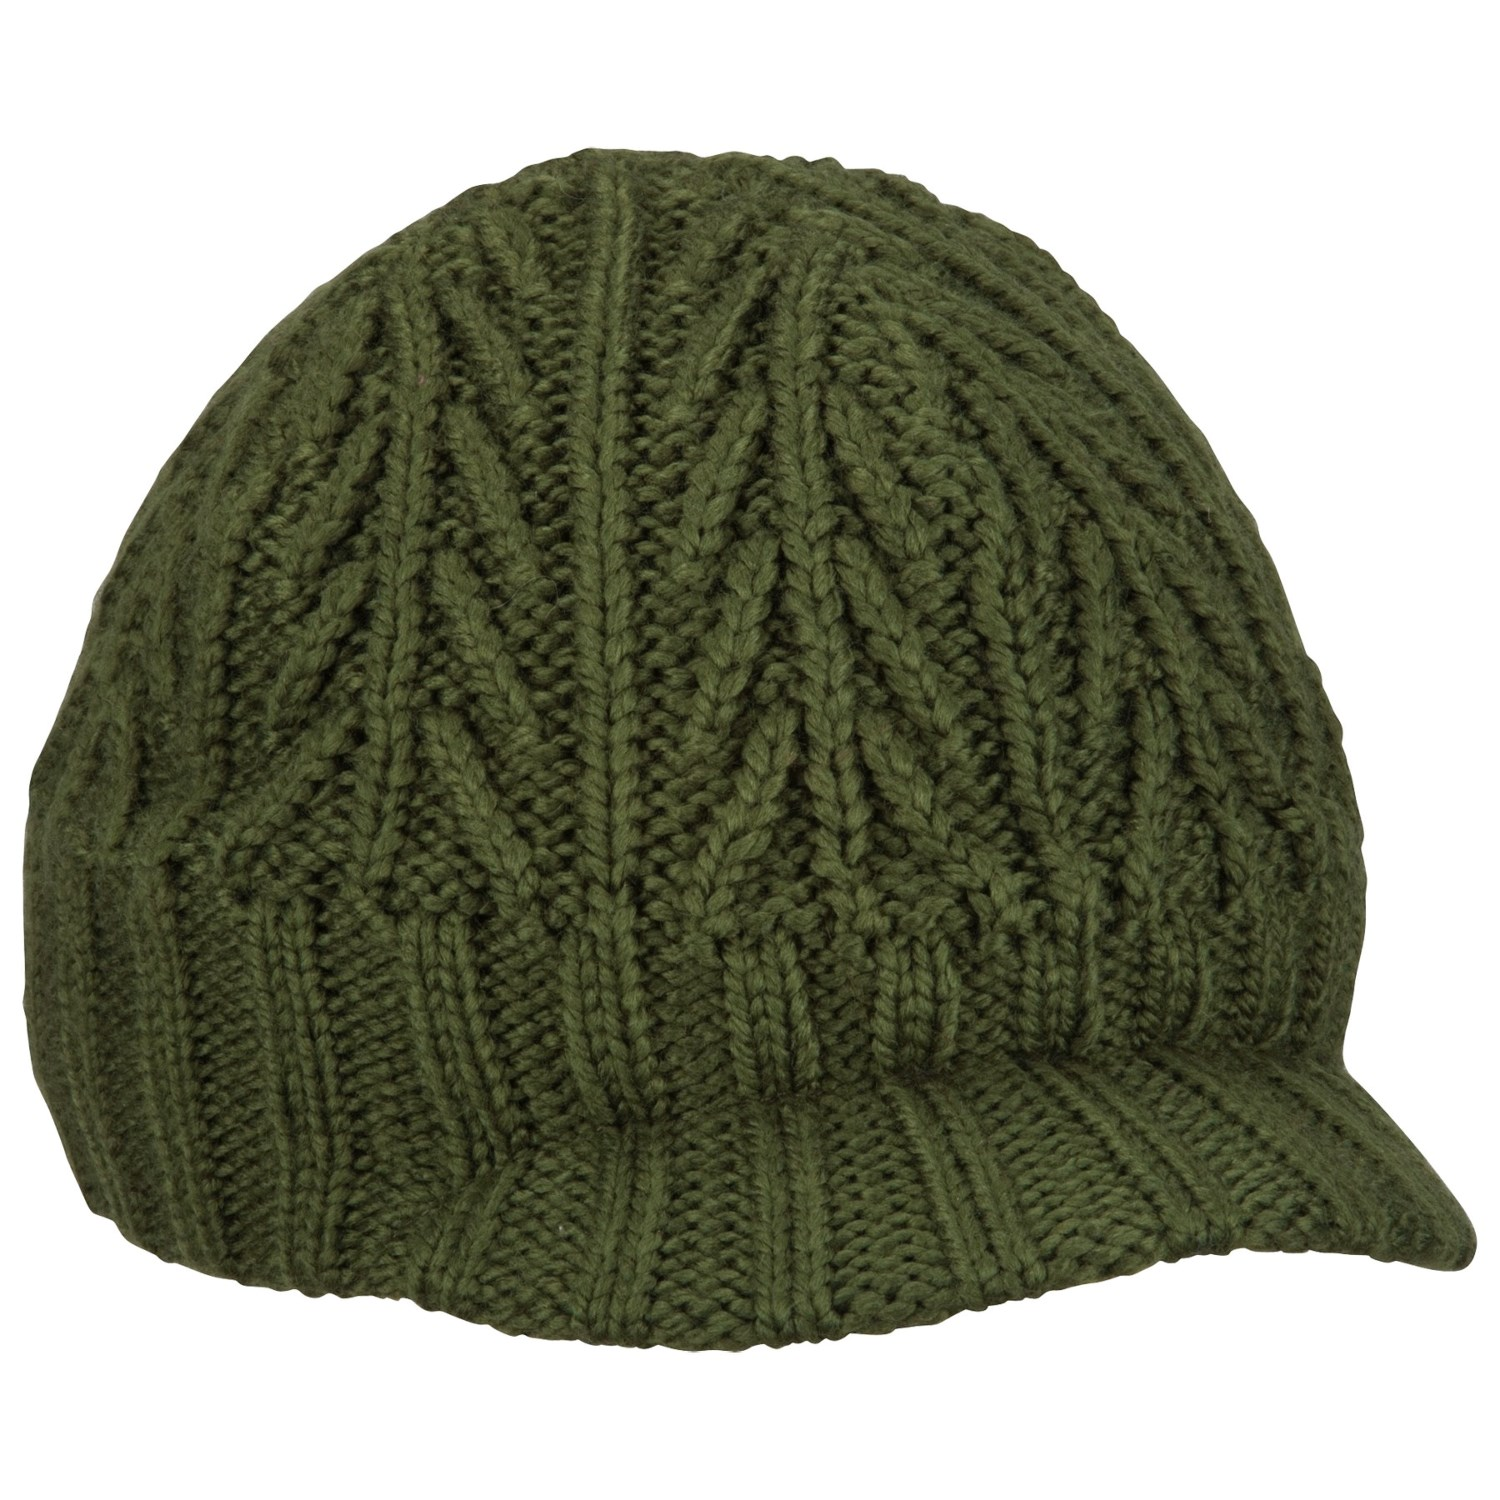 Knit+Hats Newsboy Green Hats Free Knitting Patterns Baby Beanie Hat ...